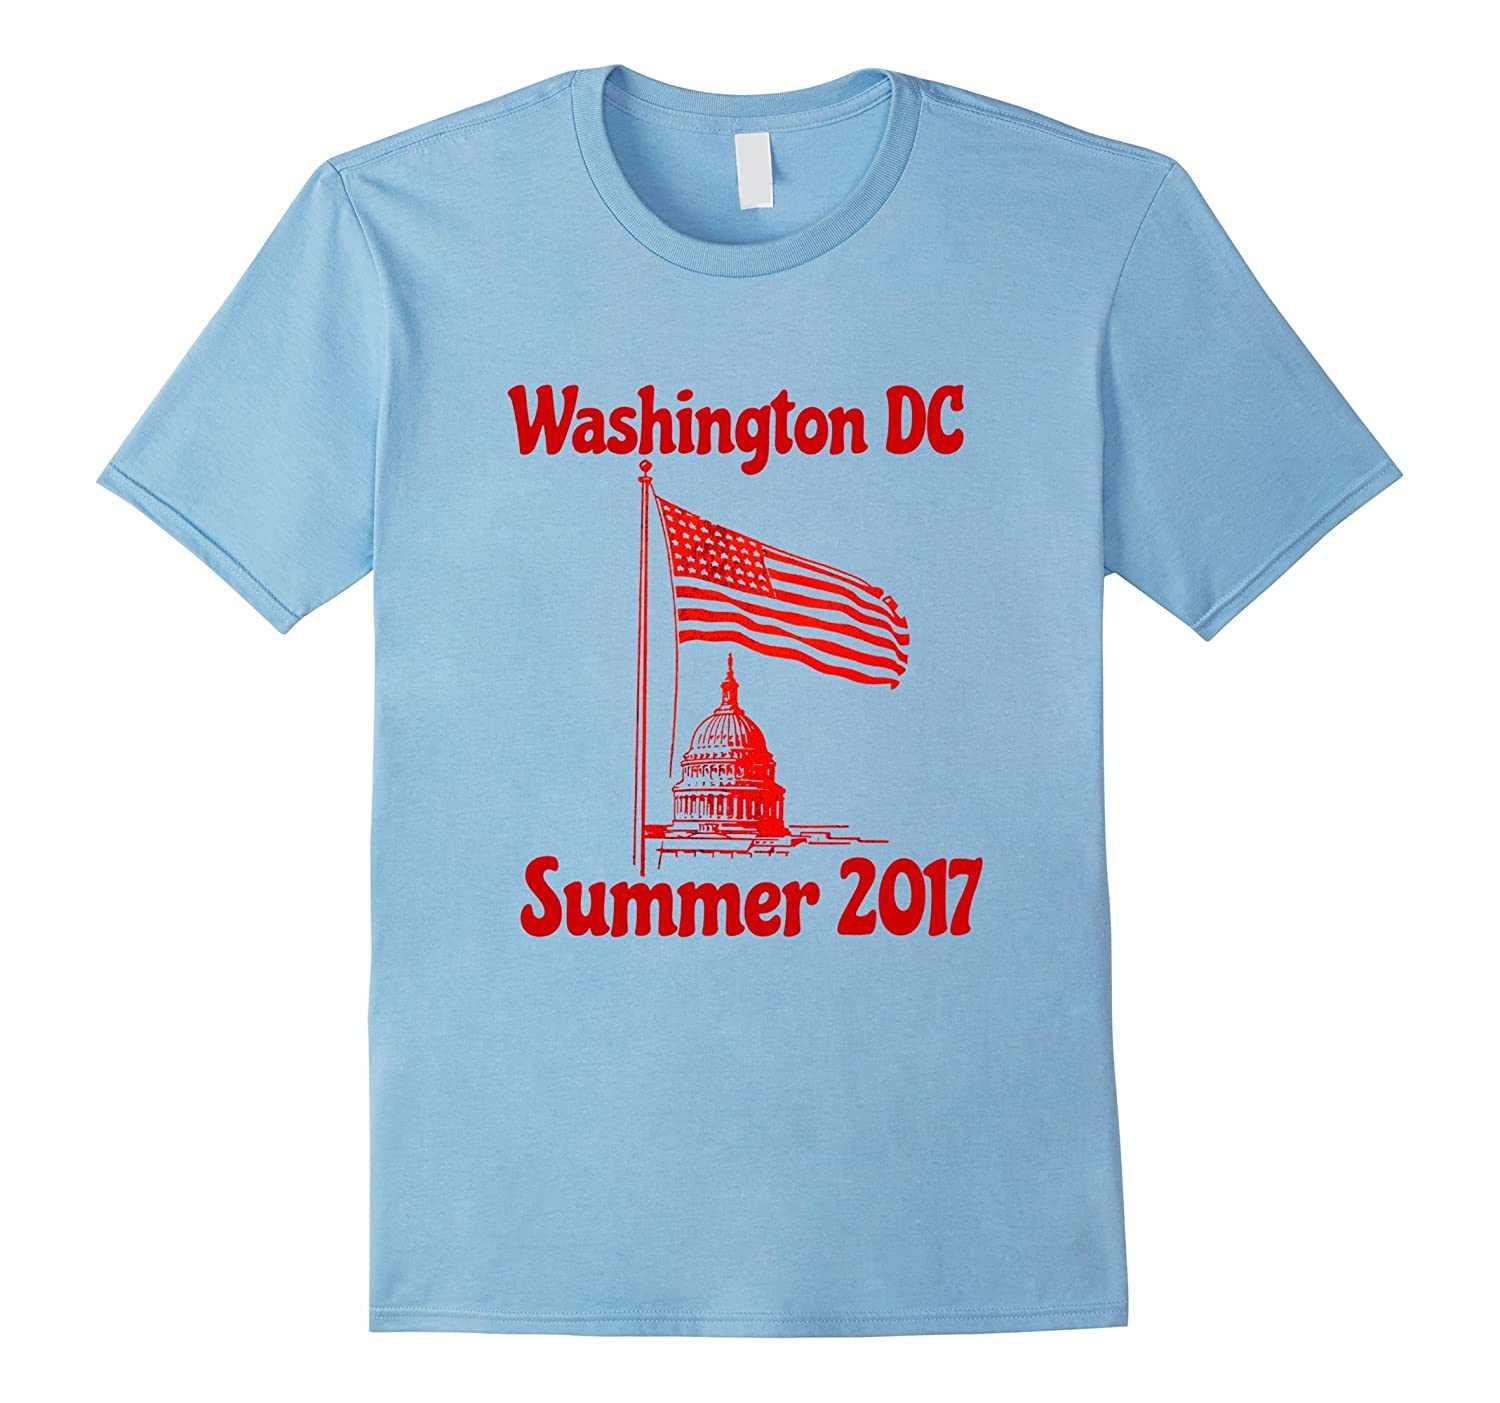 Washington DC Summer 2017 T-Shirt-Teehay